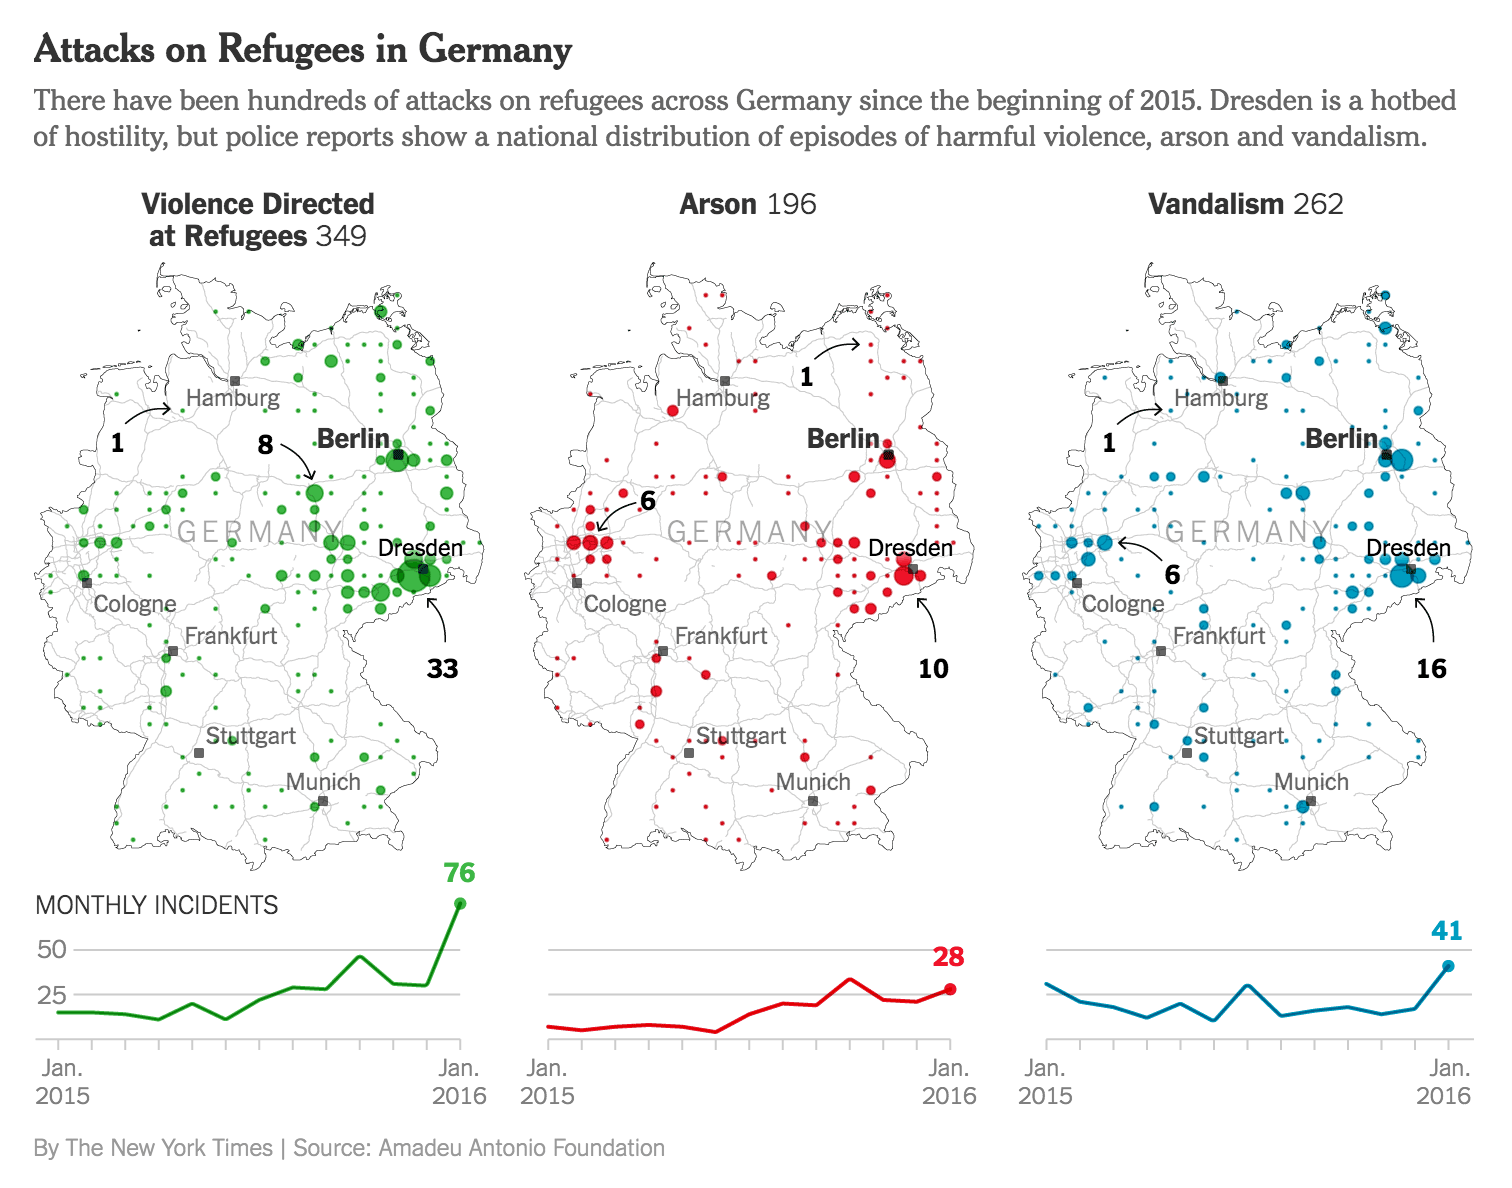 Attacks on Refugees in Germany